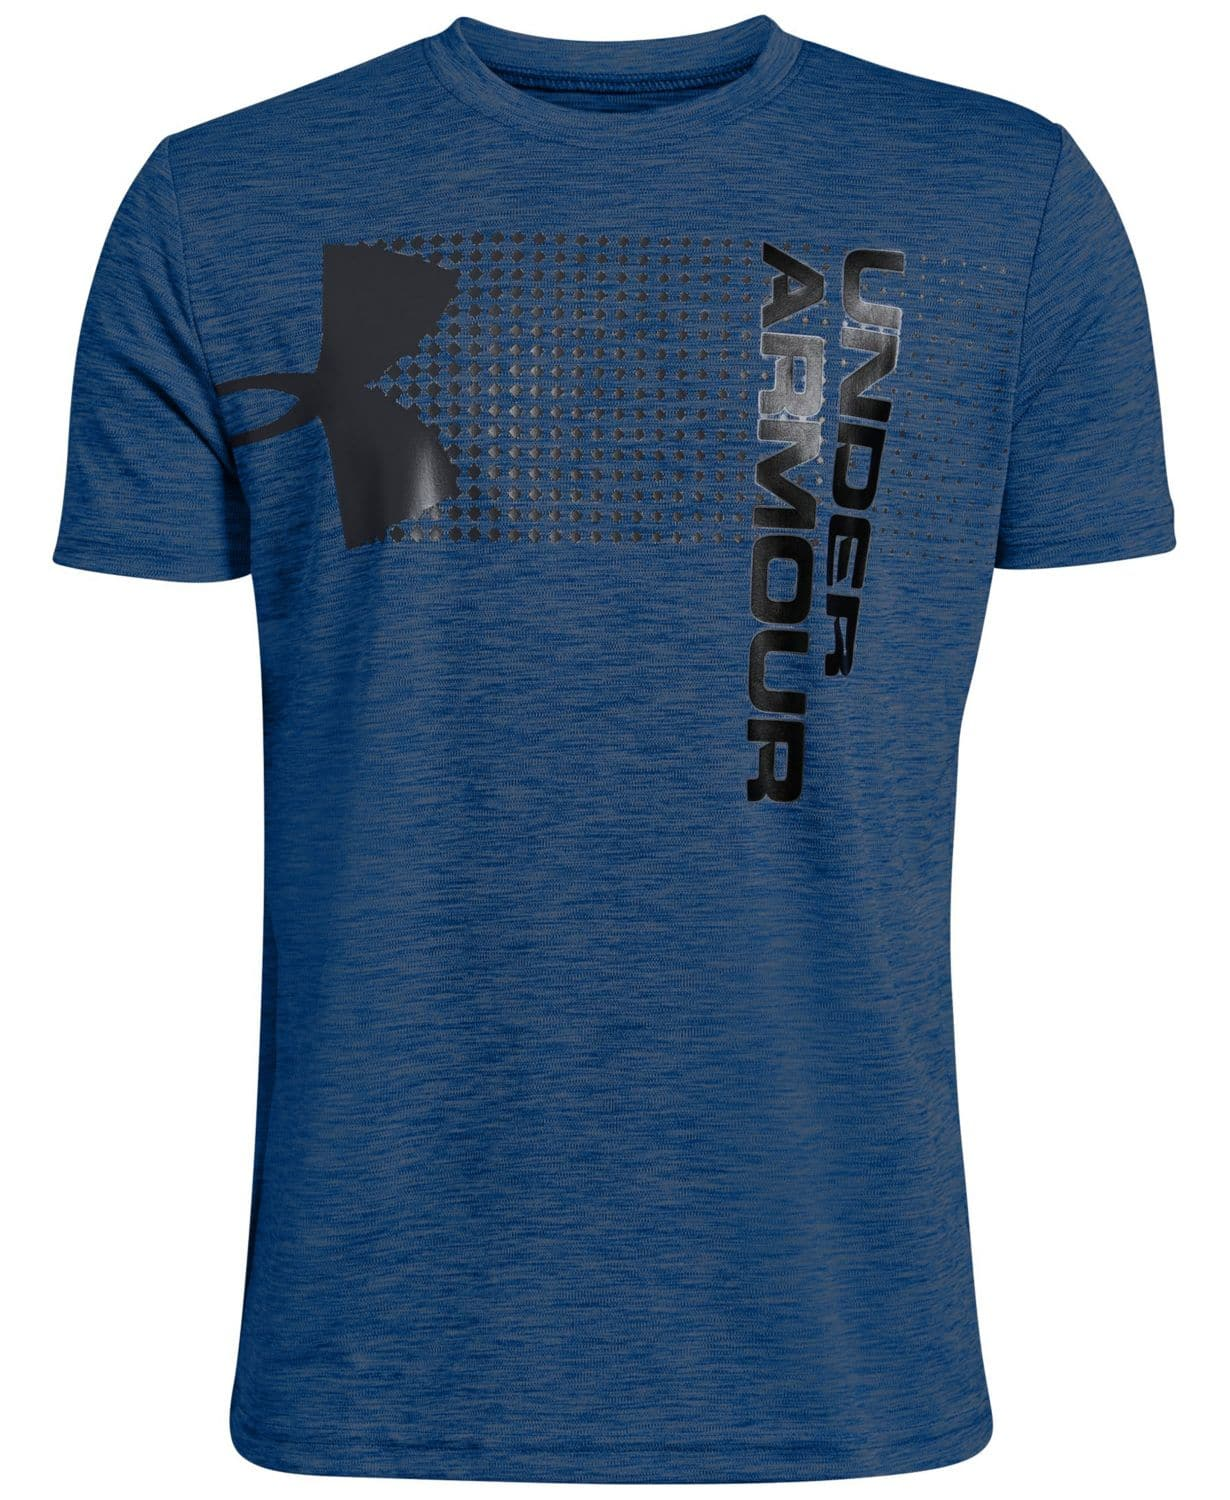 Under Armour Big Boys Crossfade T-Shirt. MACYS. $15. 25% off UNDER ARMOR COLLECTION!